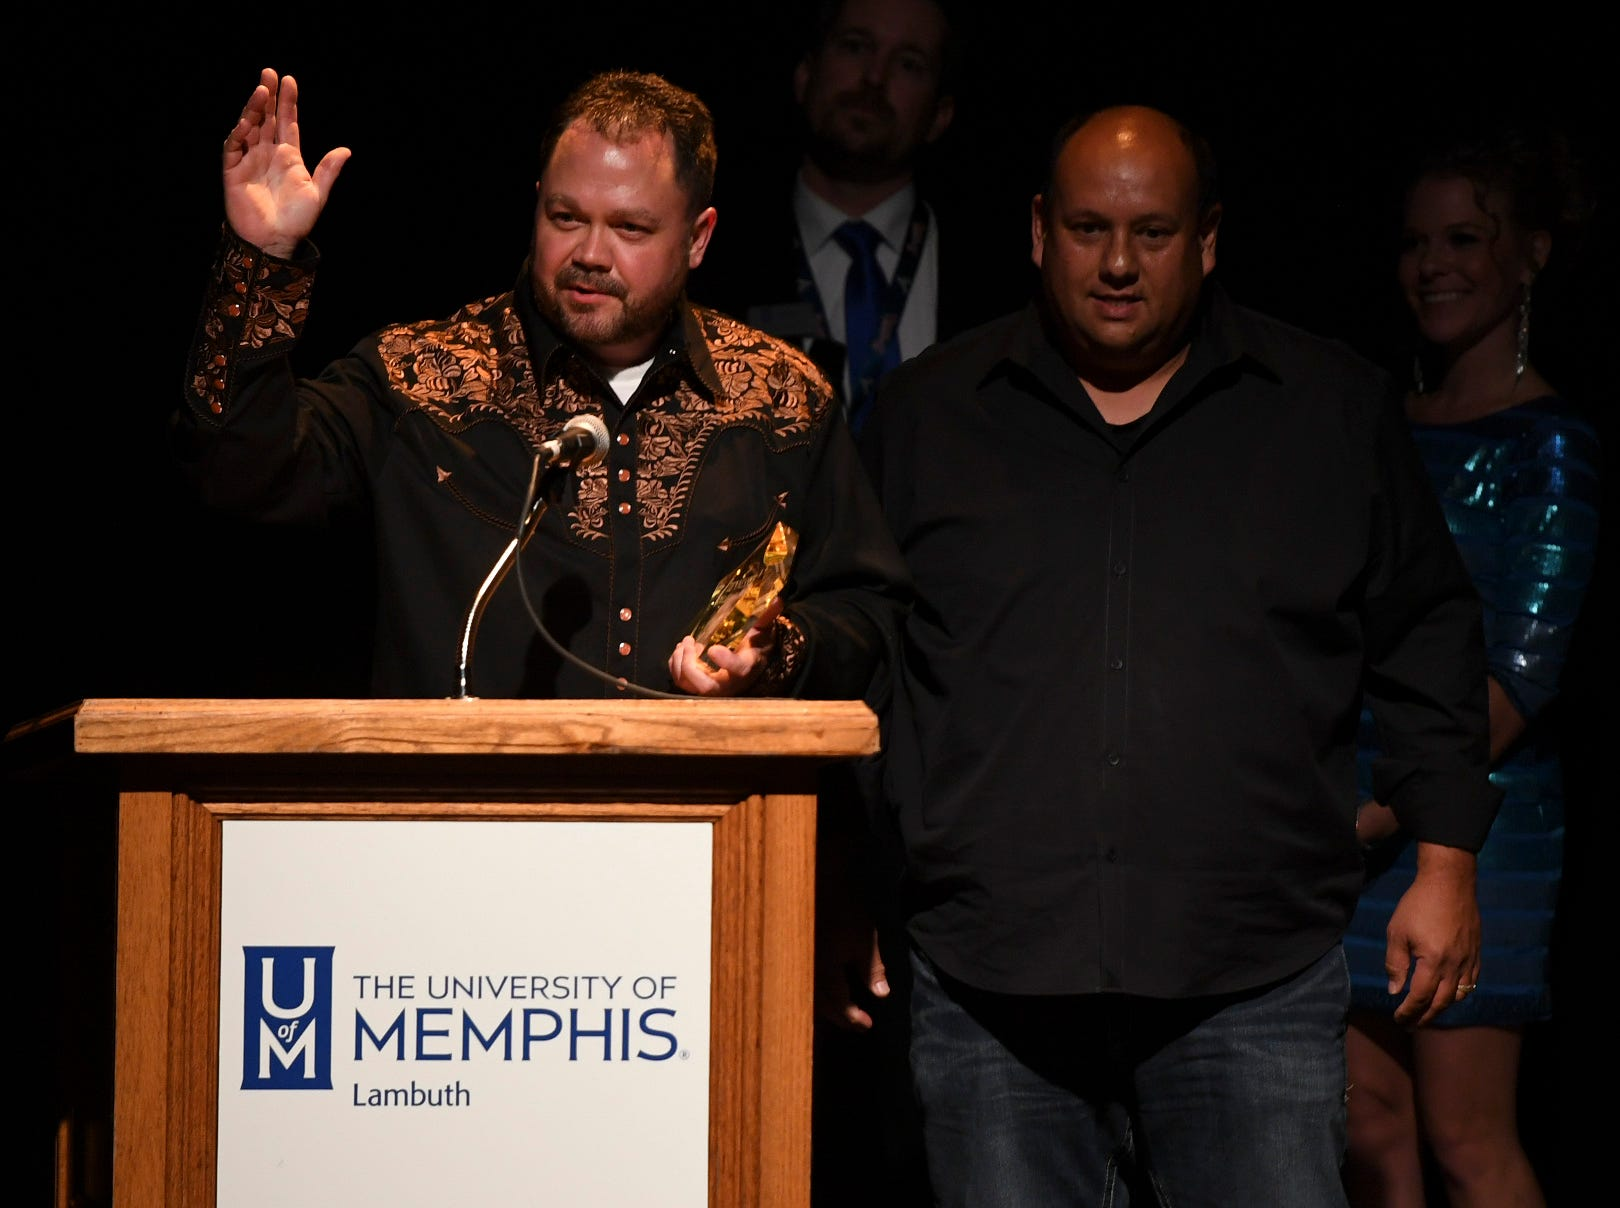 A member of the band No Time Flatt accepts the award for Bluegrass Band of the Year during the 2nd Annual Tennessee Music Awards, Monday, October 8, at University of Memphis Lambuth.